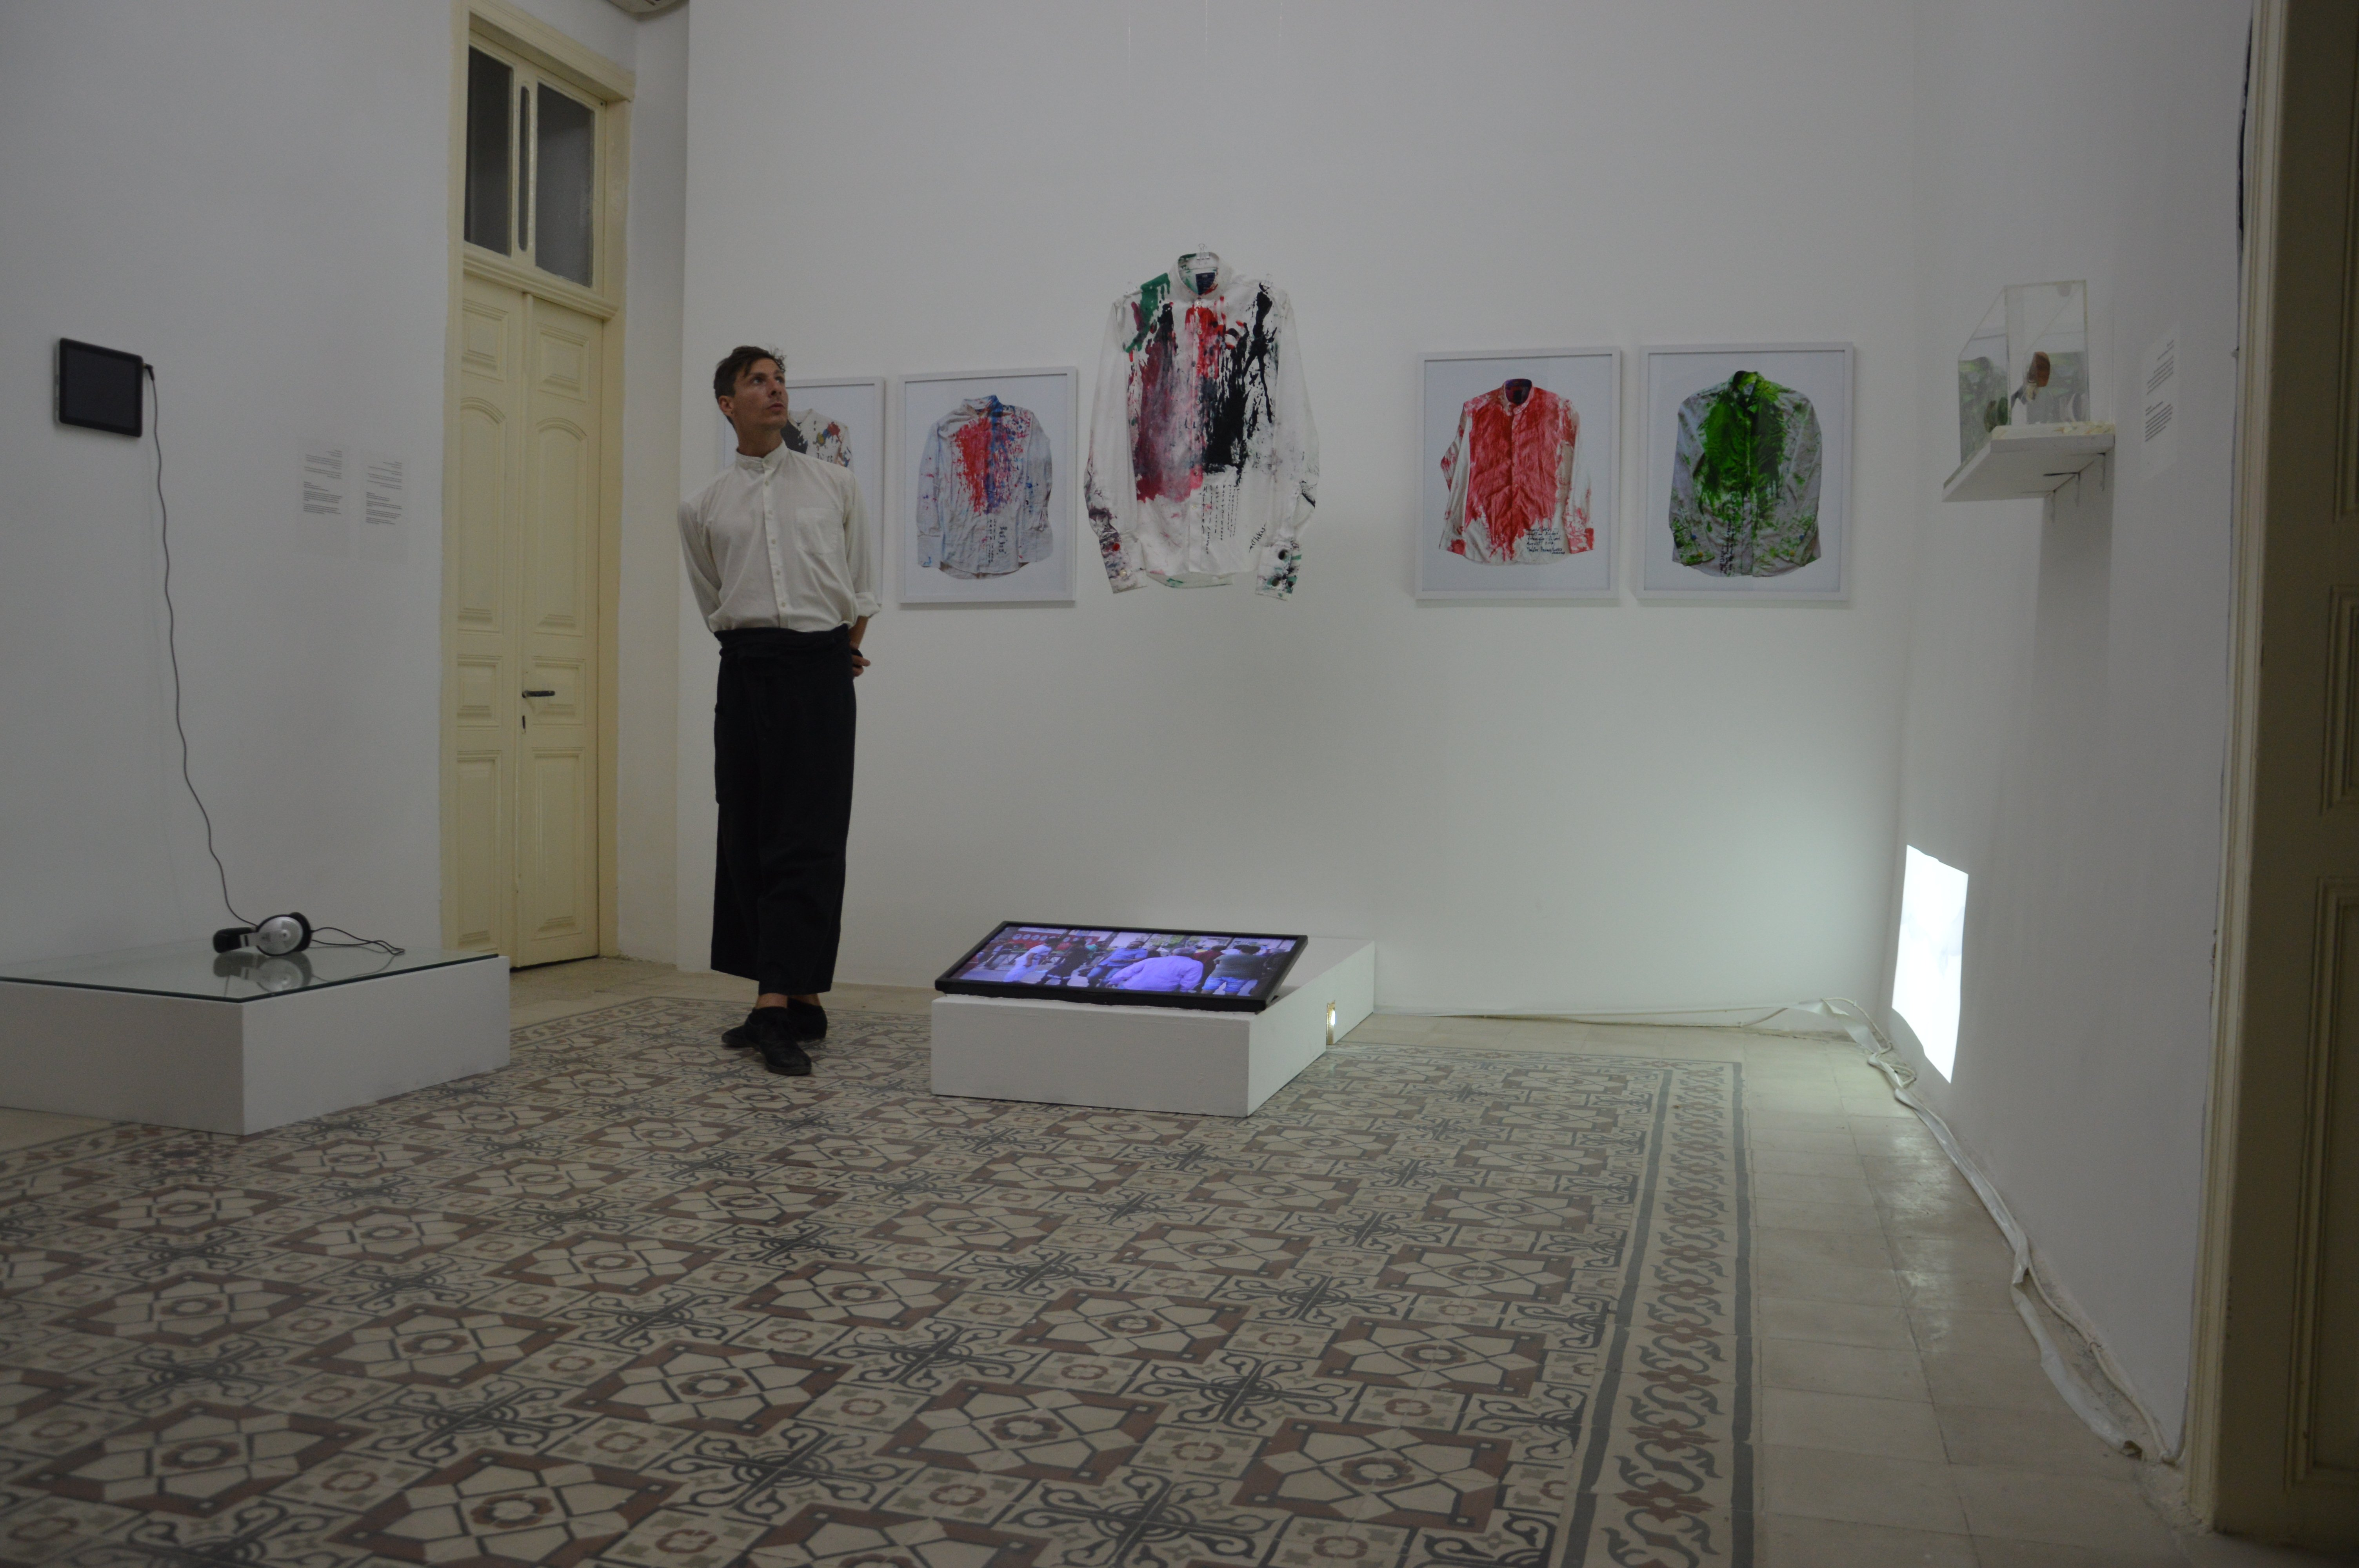 Final Exhibition of Performance relics at Darat Al funun in Jordan n2